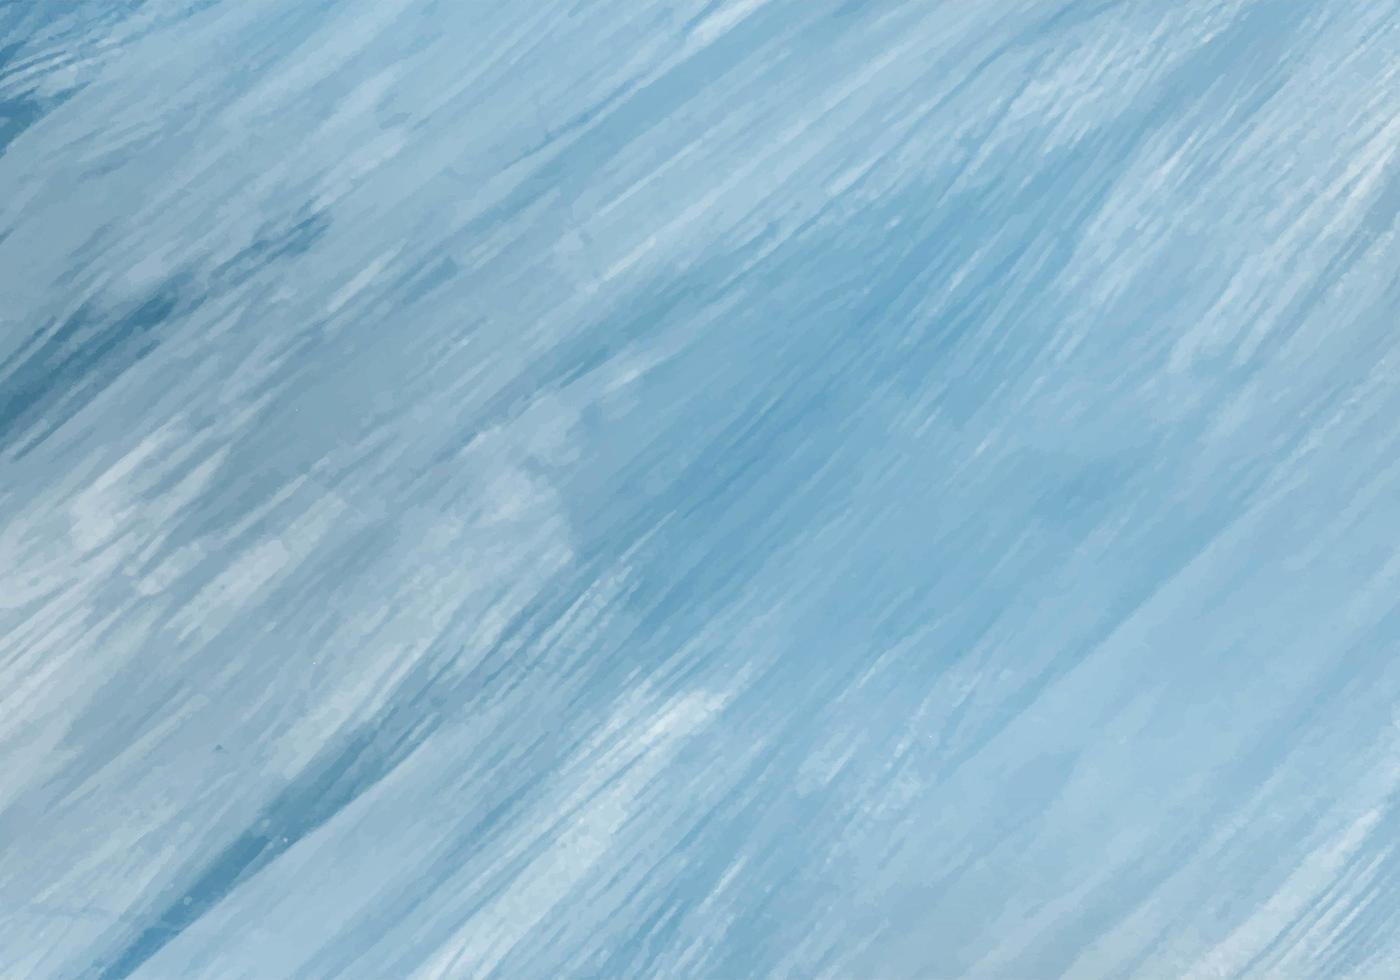 Abstract blue paint texture background vector